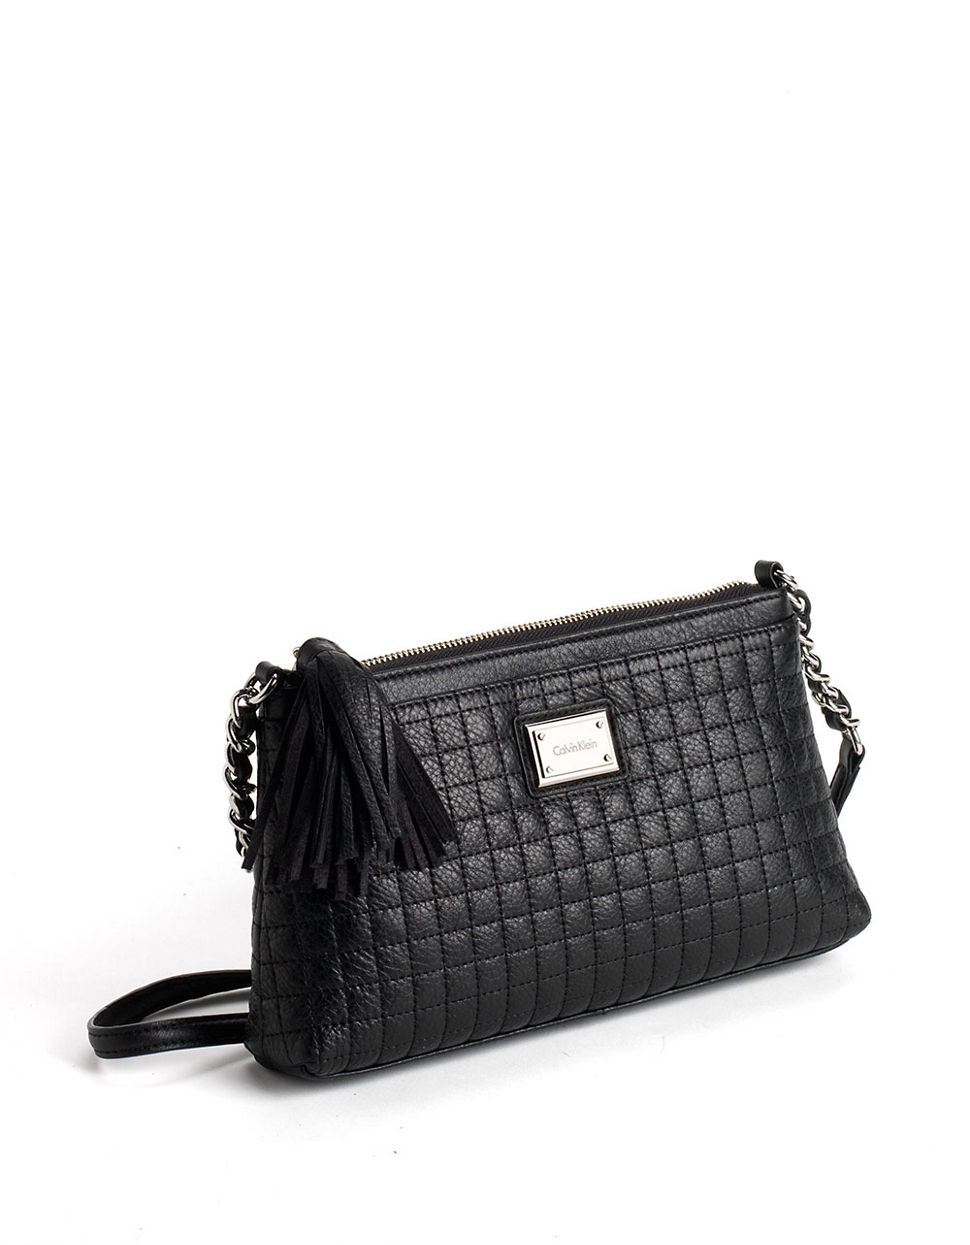 Calvin klein Quilted Leather Crossbody Bag in Black | Lyst : calvin klein quilted leather crossbody bag - Adamdwight.com